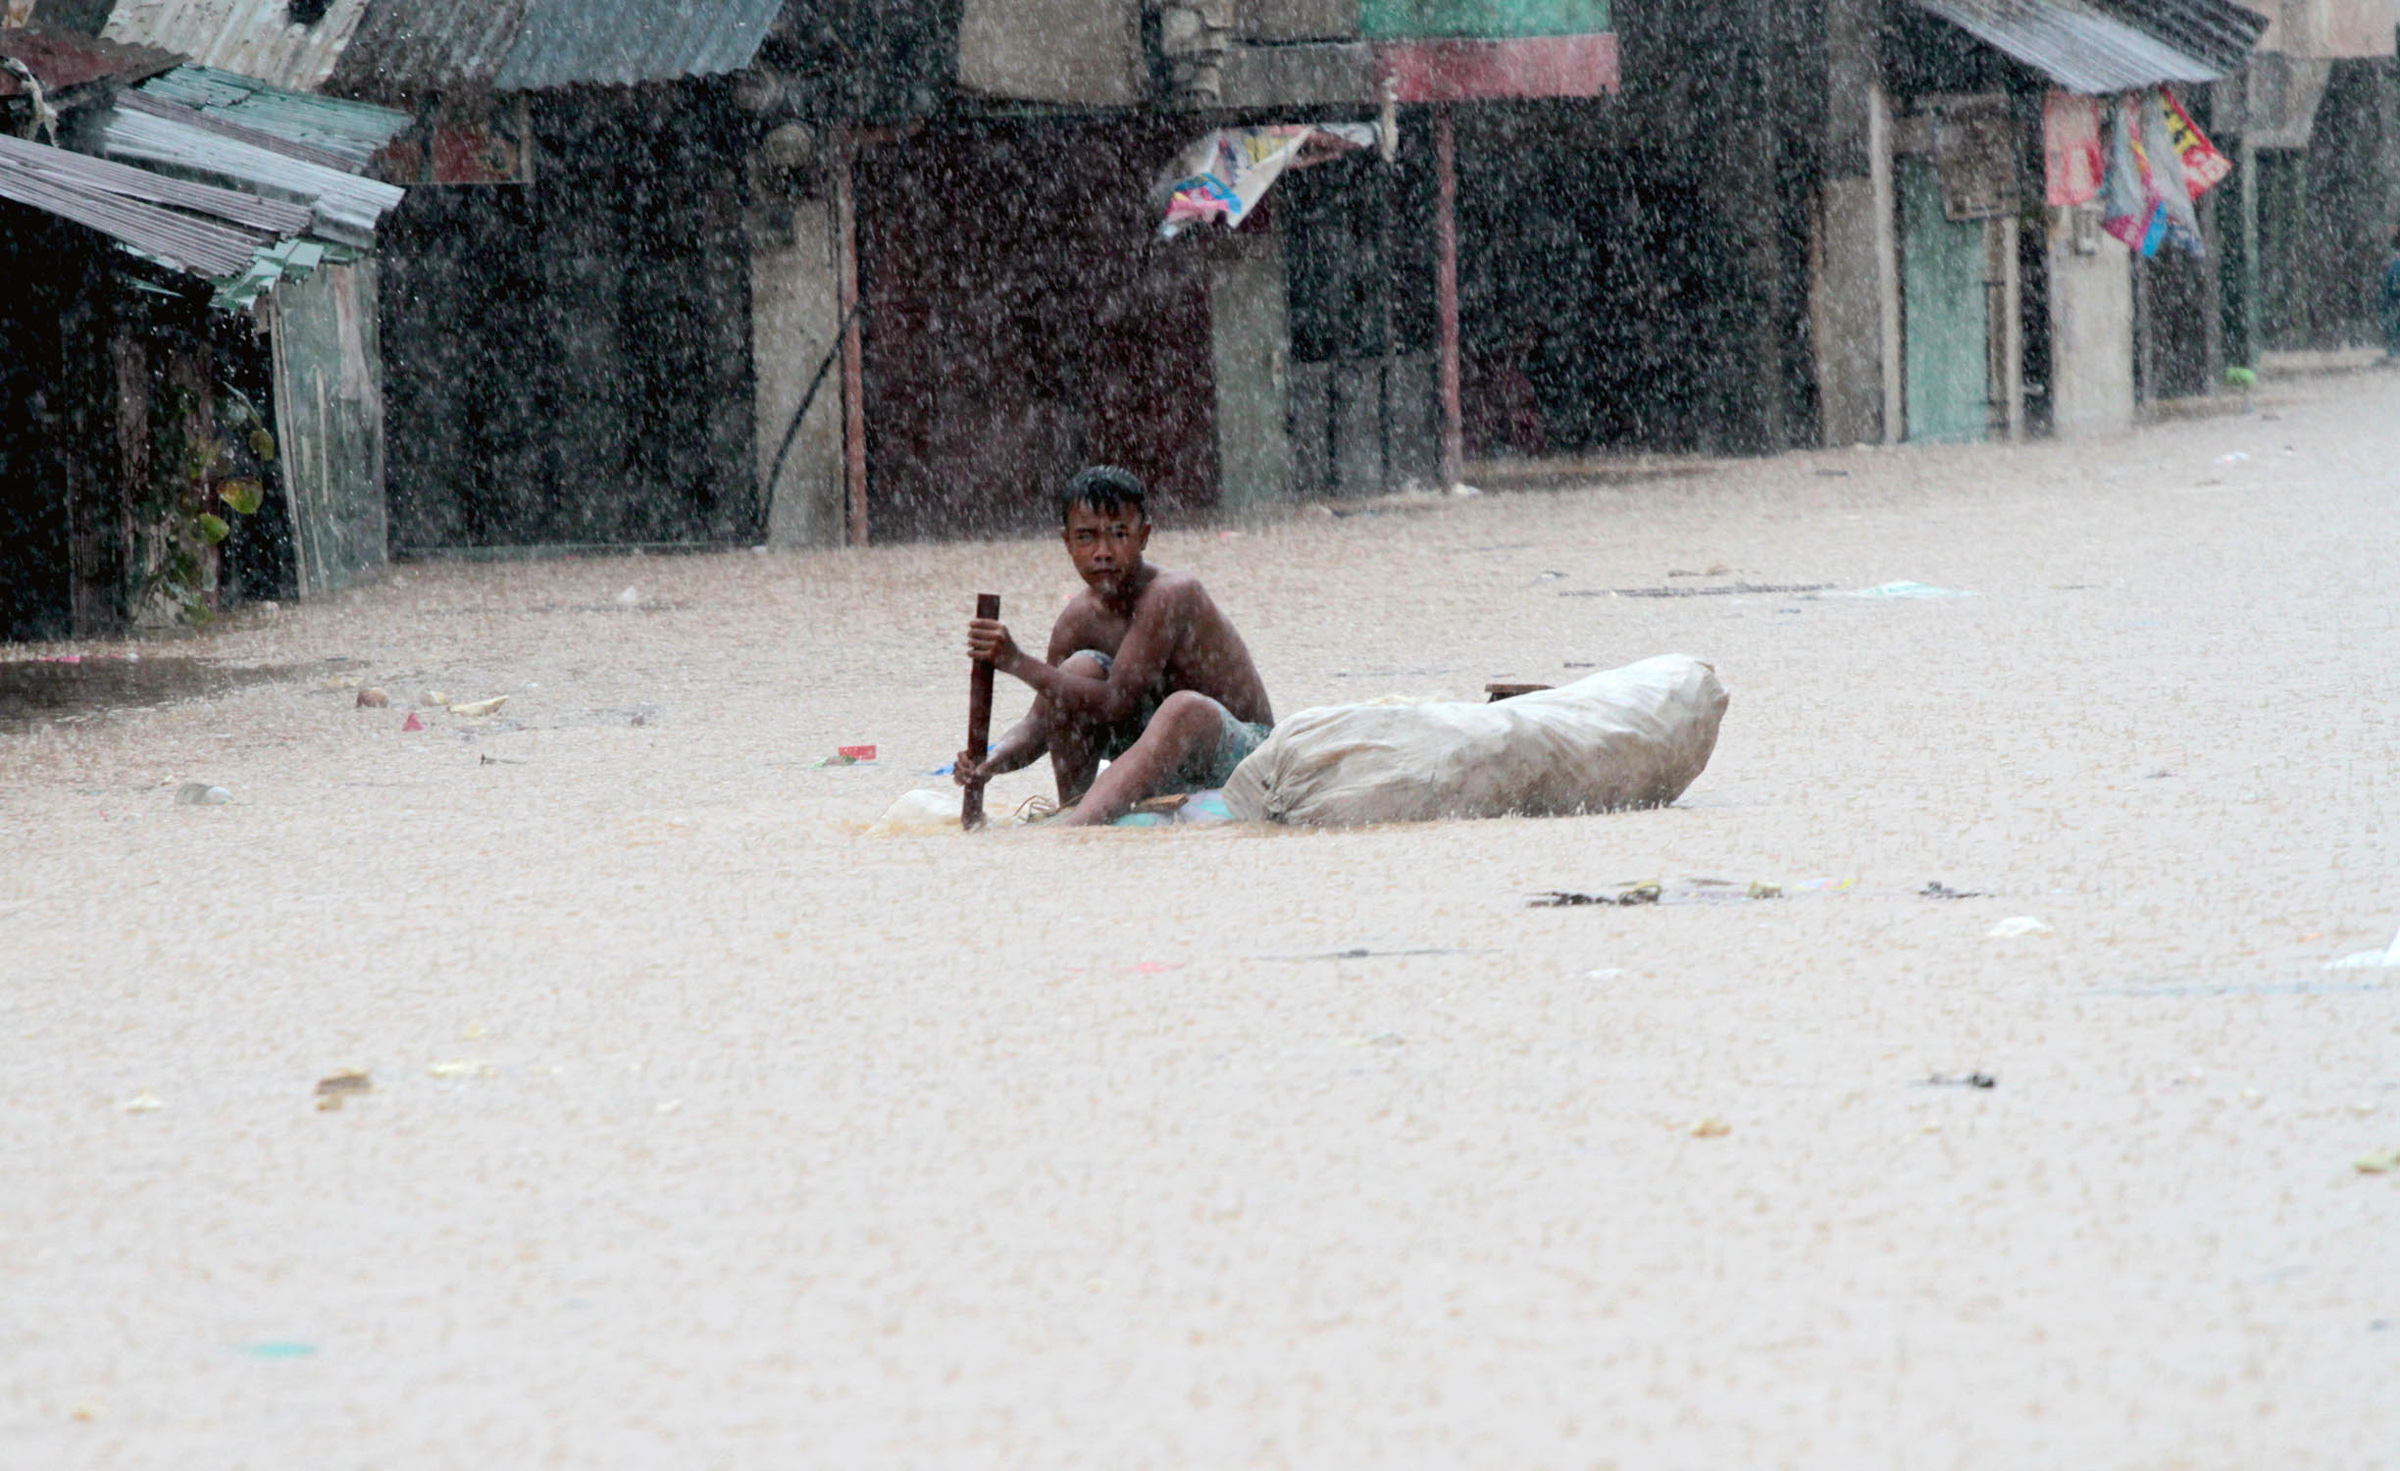 A boy on an improvised raft travels down a flooded road in a slum district of Tumana, near Marikina, in the Philippines (Aug 2012)